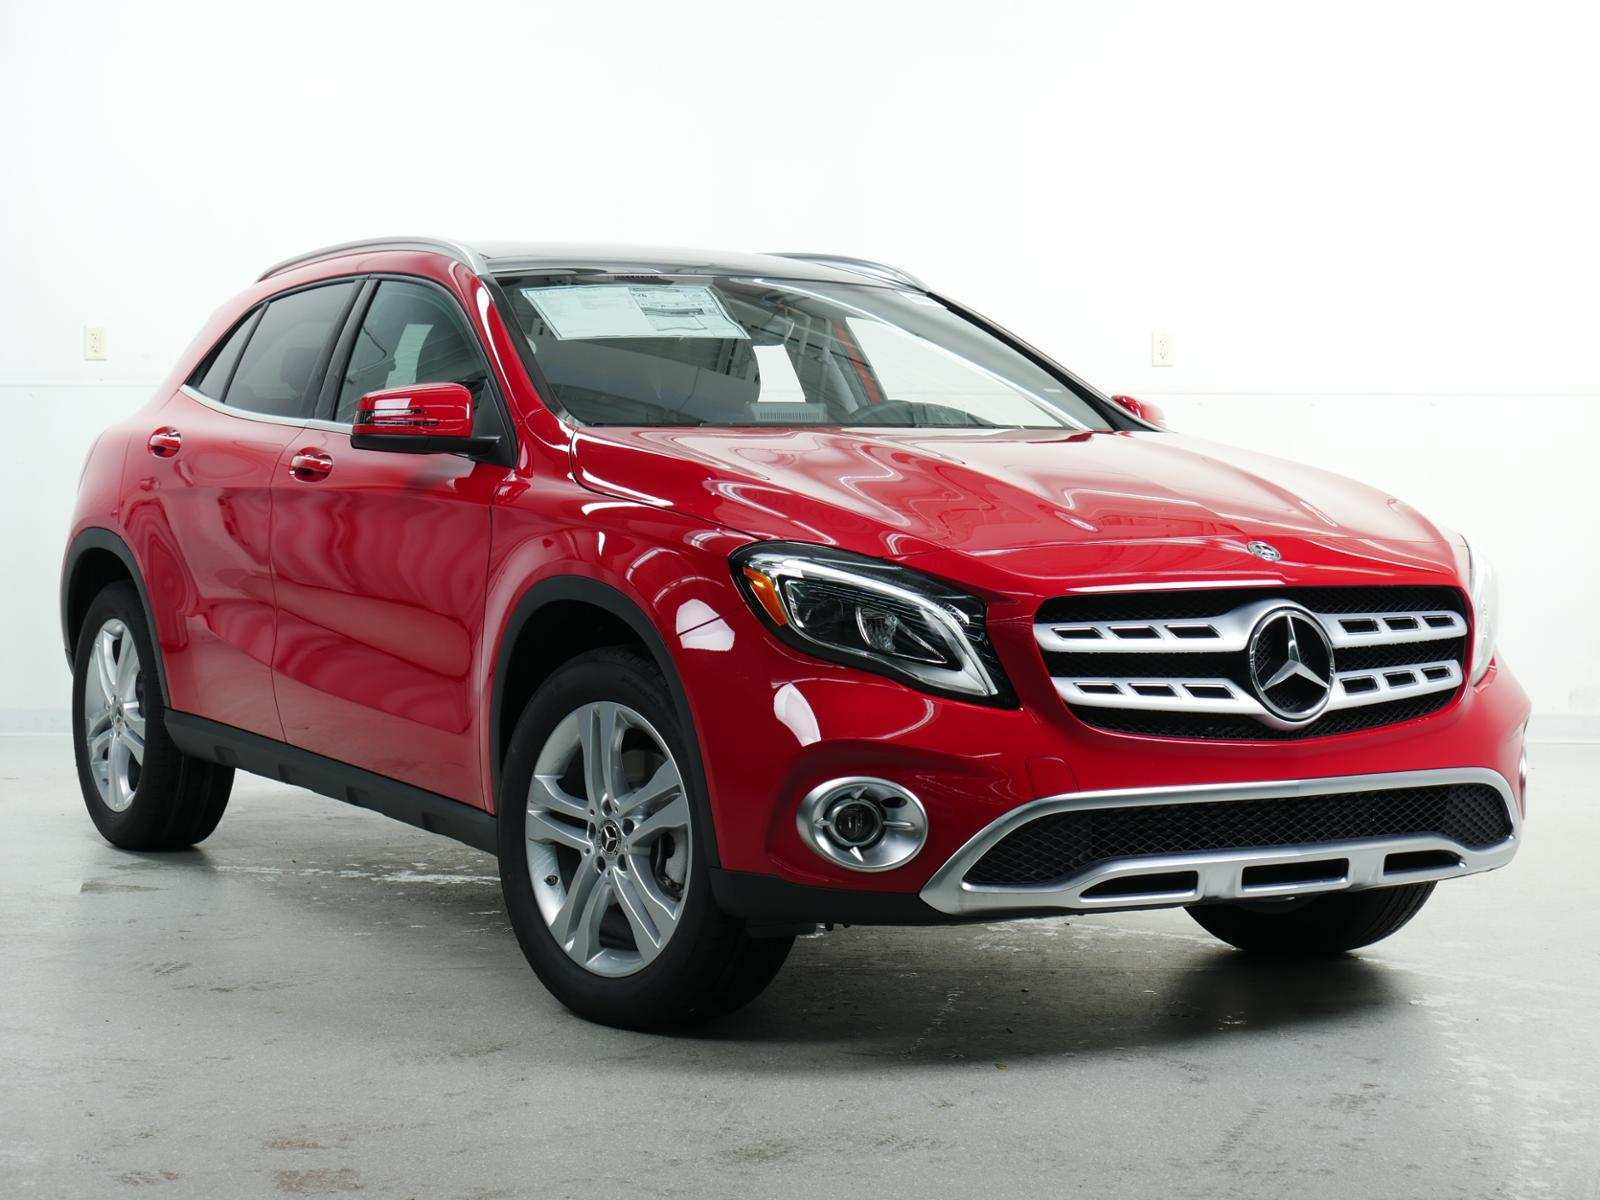 95 Gallery of Mercedes 2019 Gla Picture for Mercedes 2019 Gla